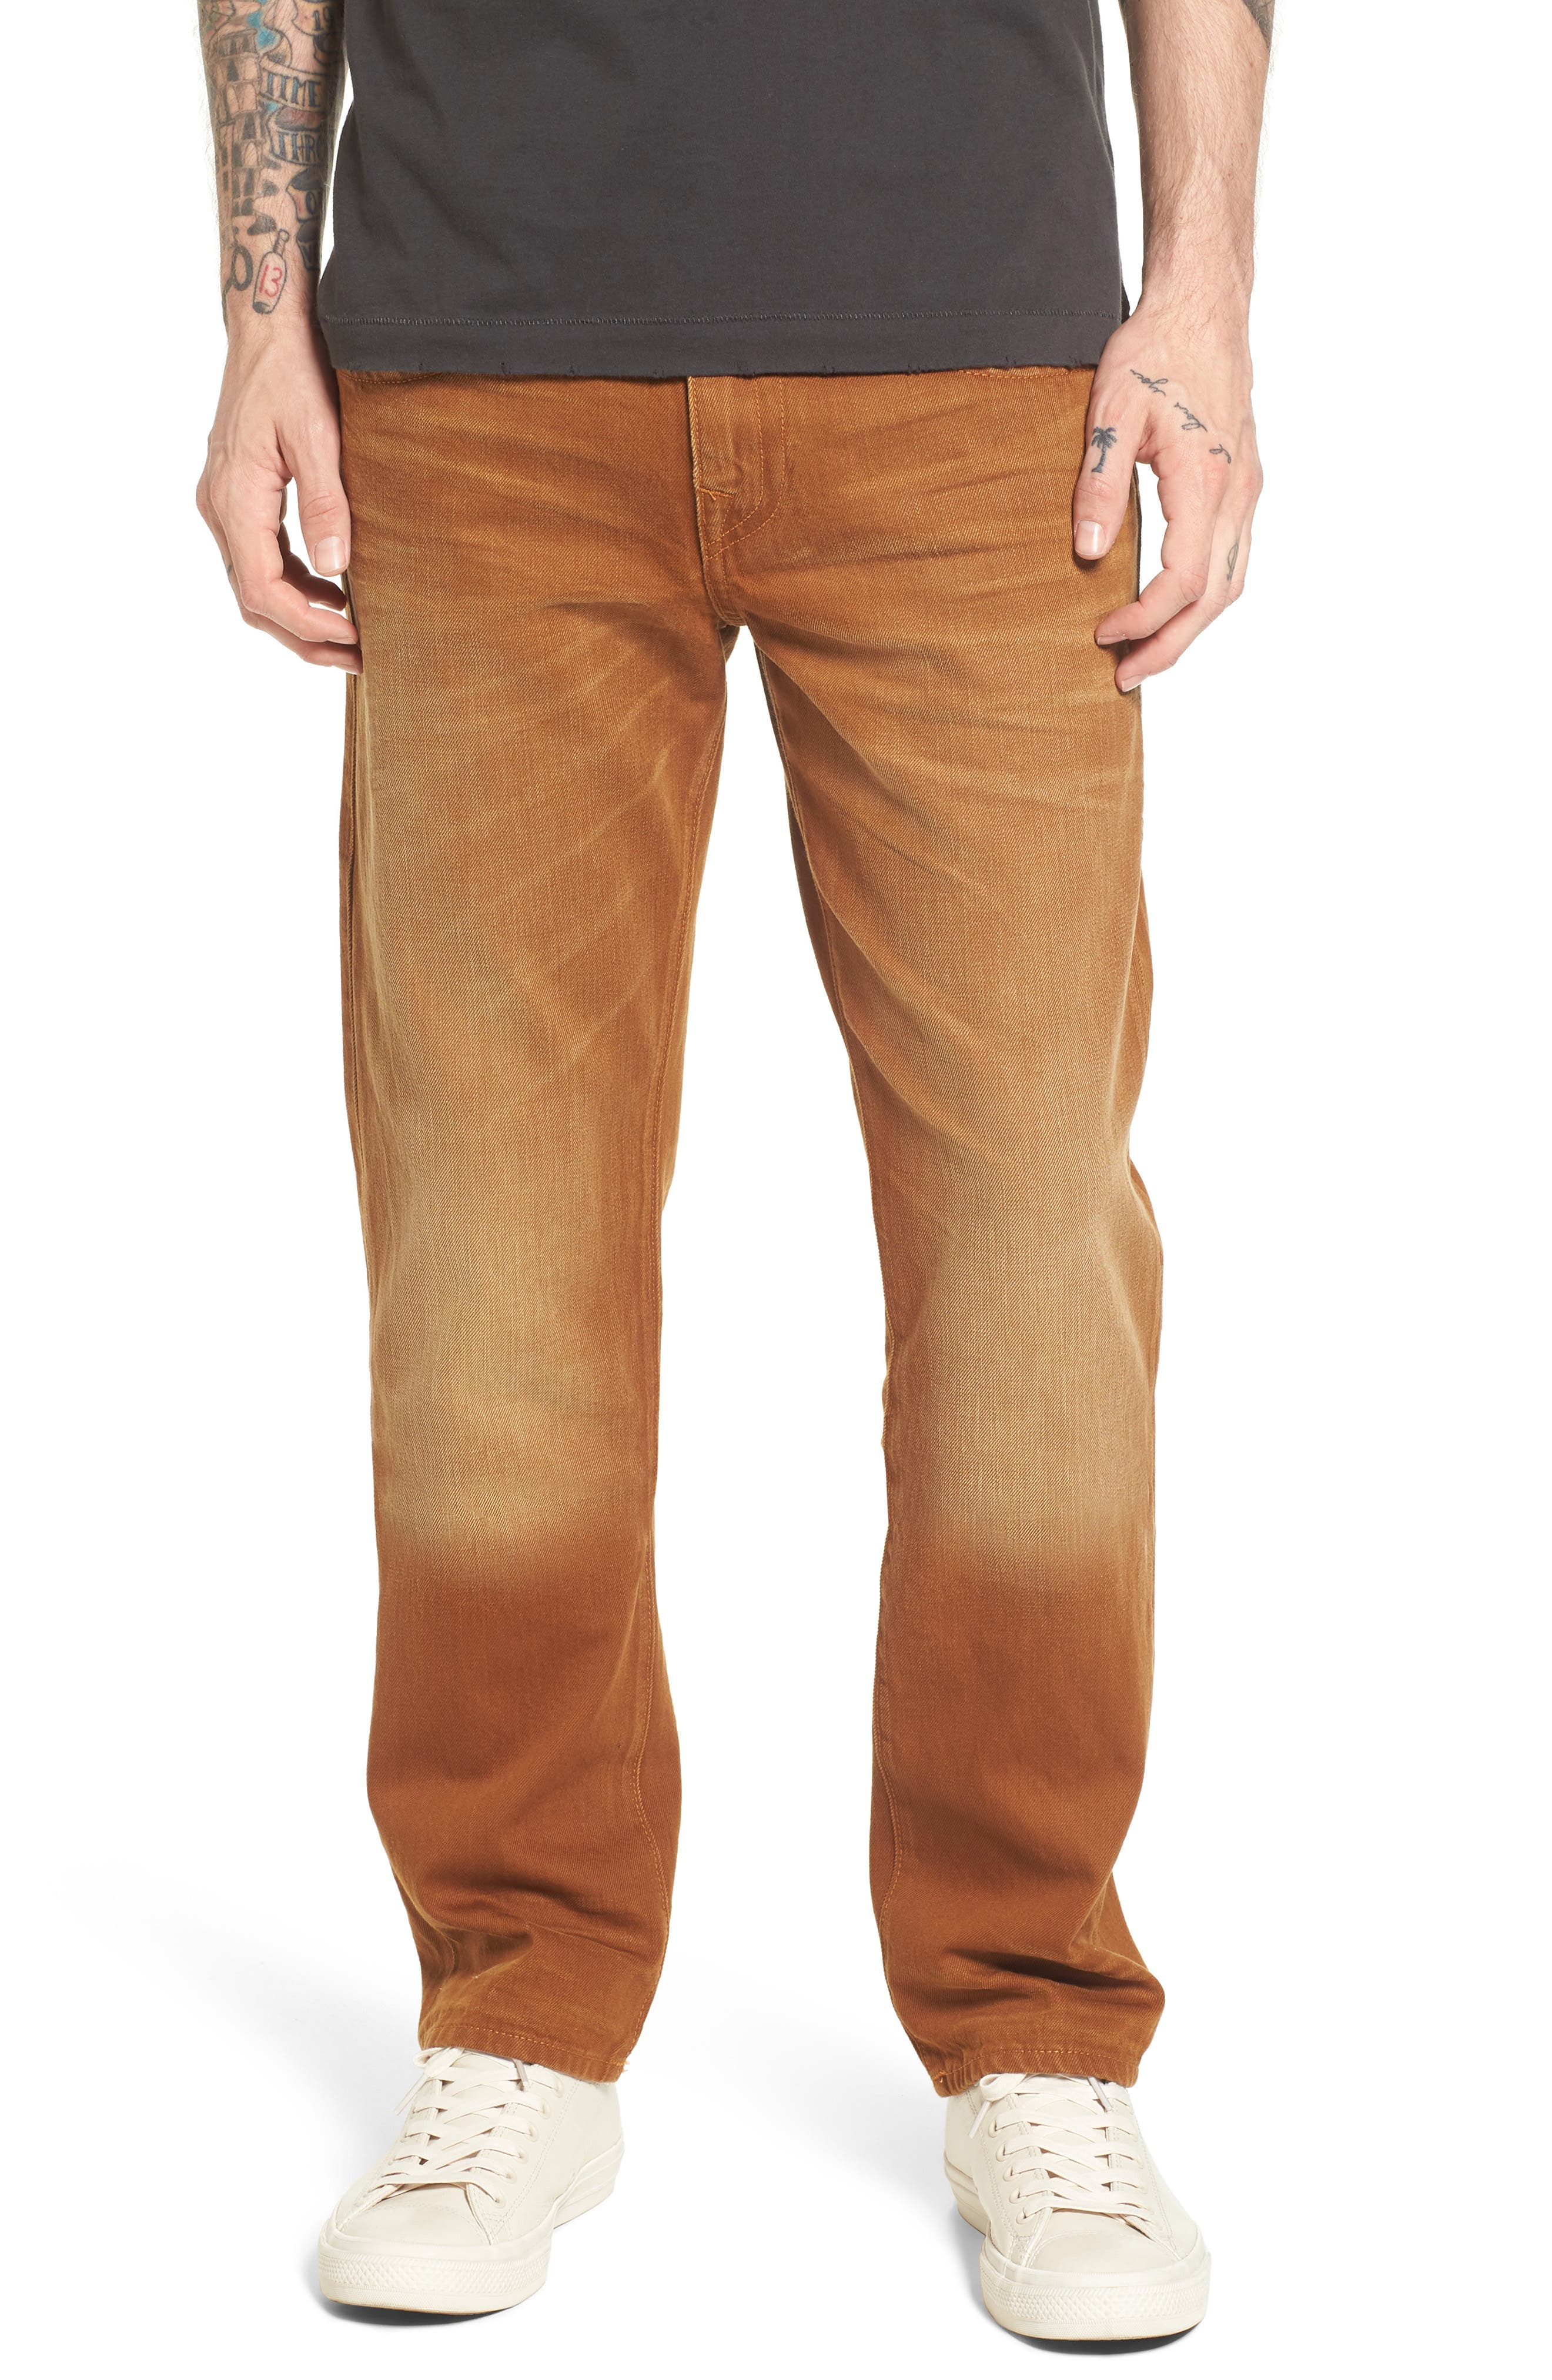 Geno Straight Fit Jeans,                         Main,                         color, Golden Road